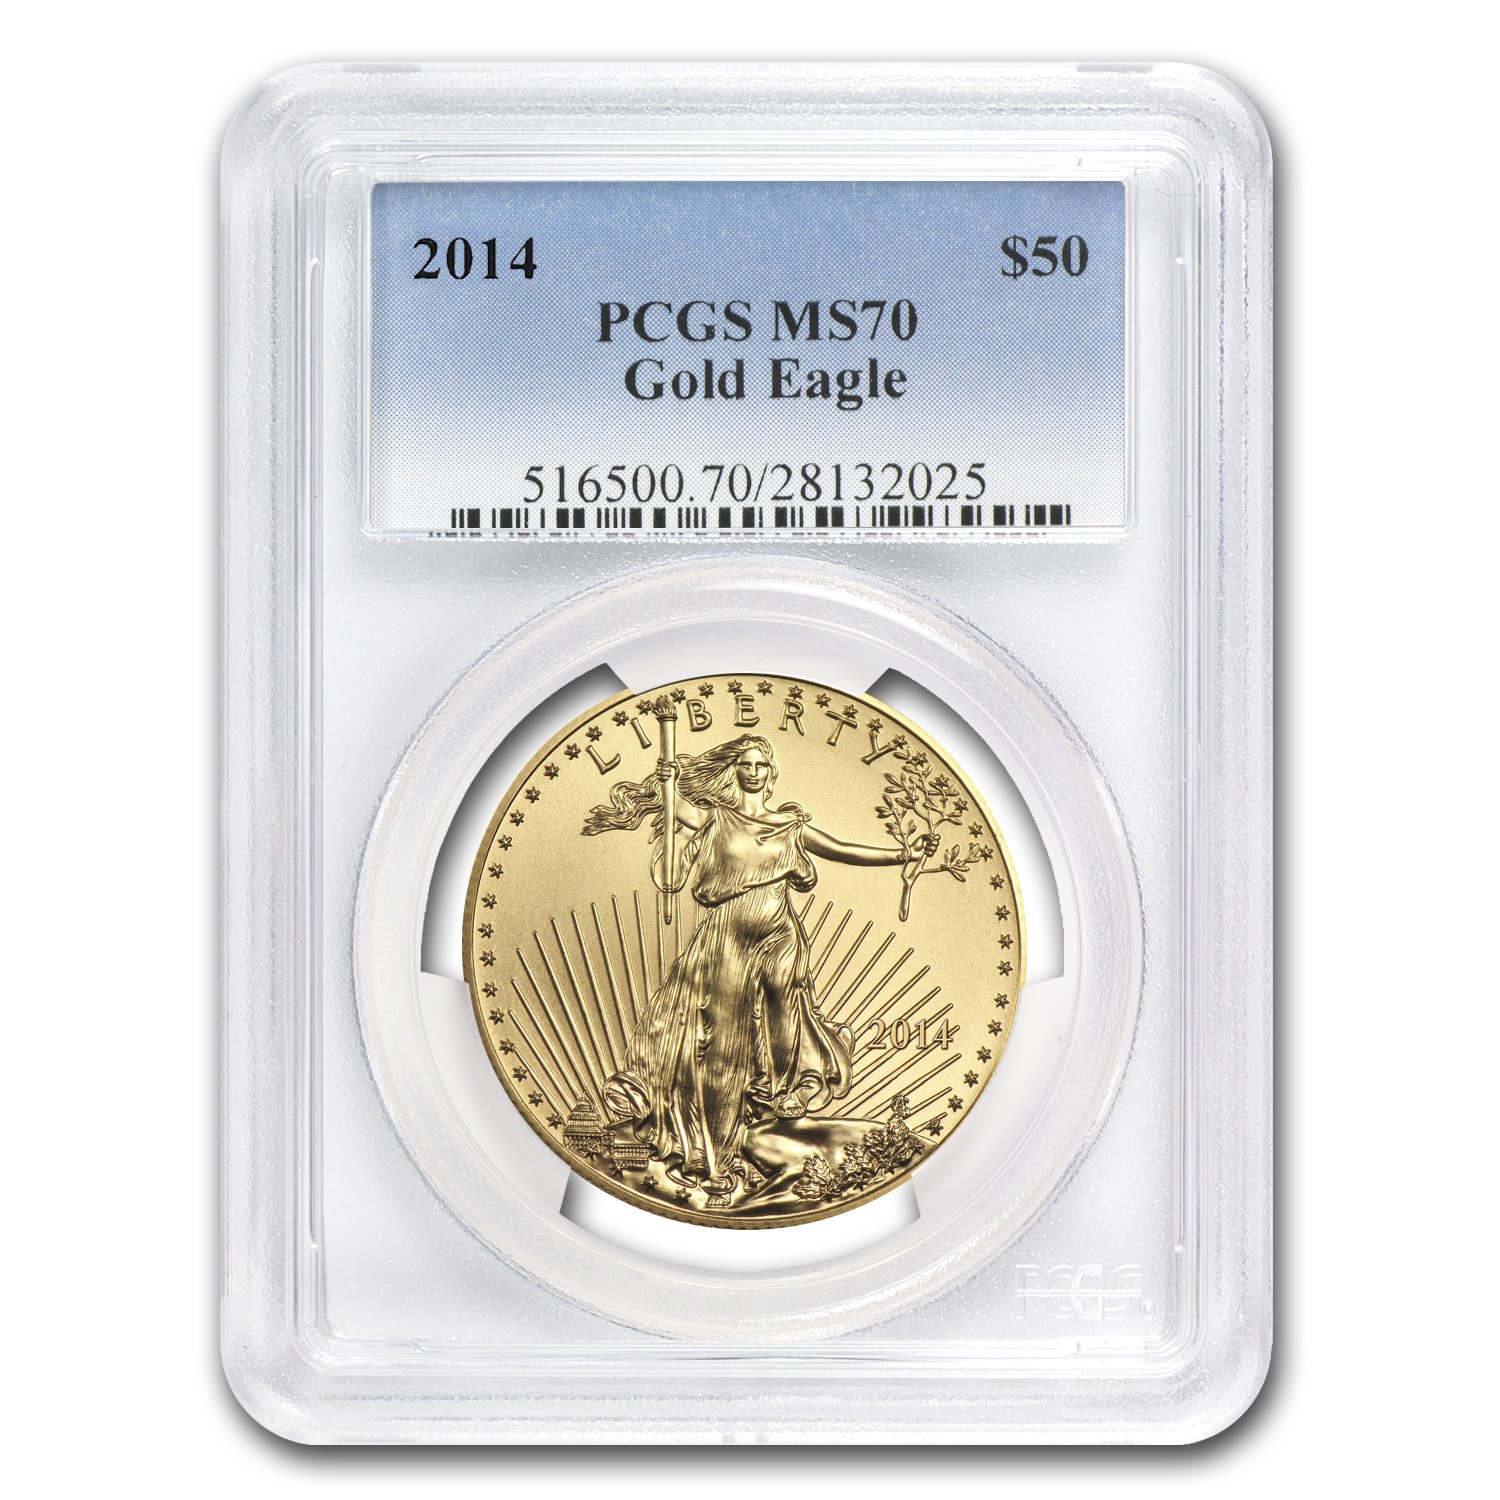 2014 1 oz Gold American Eagle MS-70 PCGS